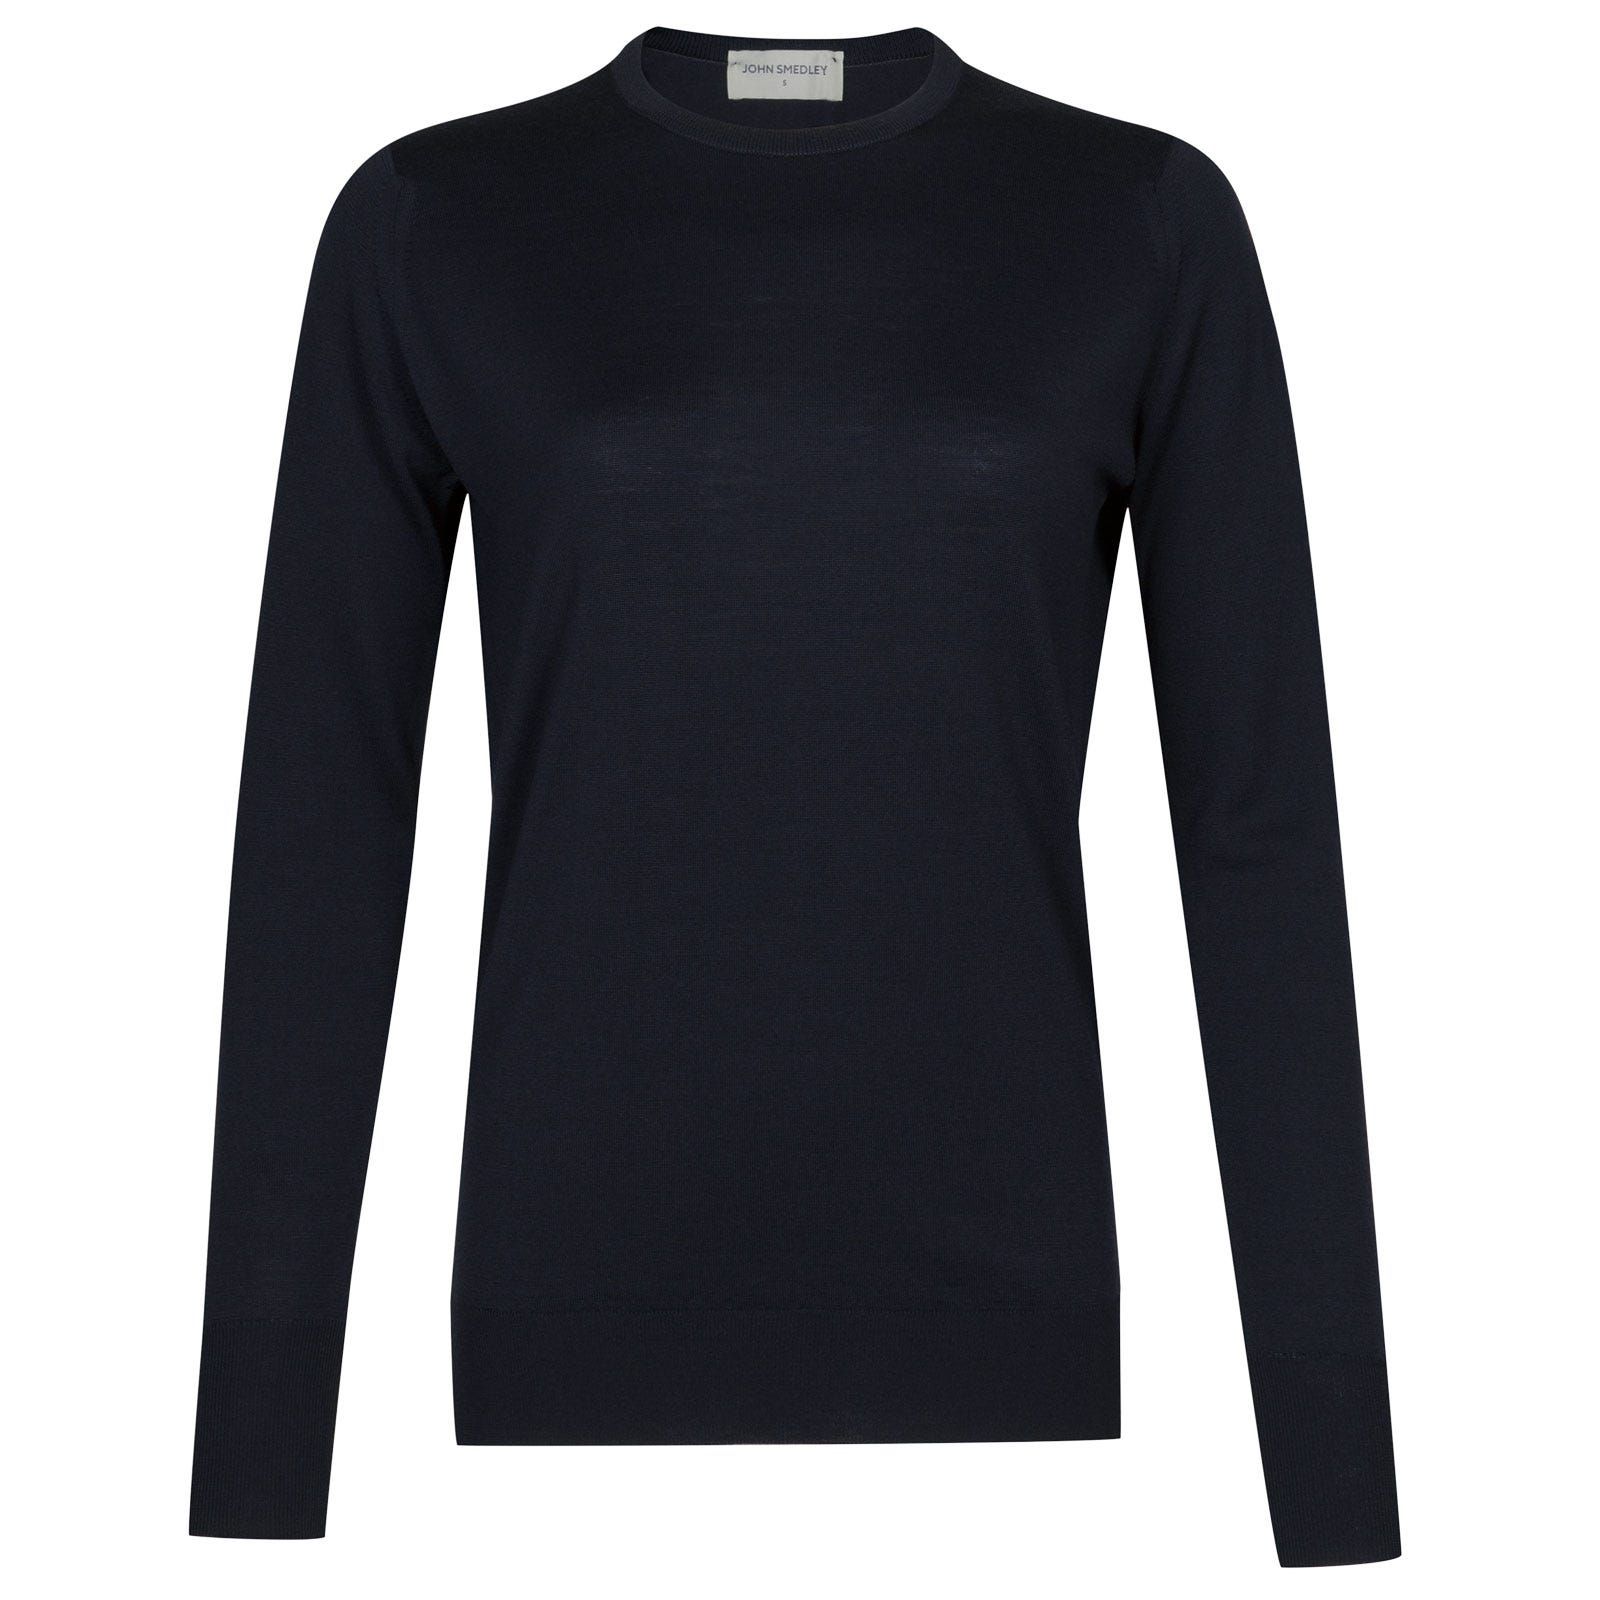 John Smedley Mitzi Merino Wool Sweater in Midnight-L